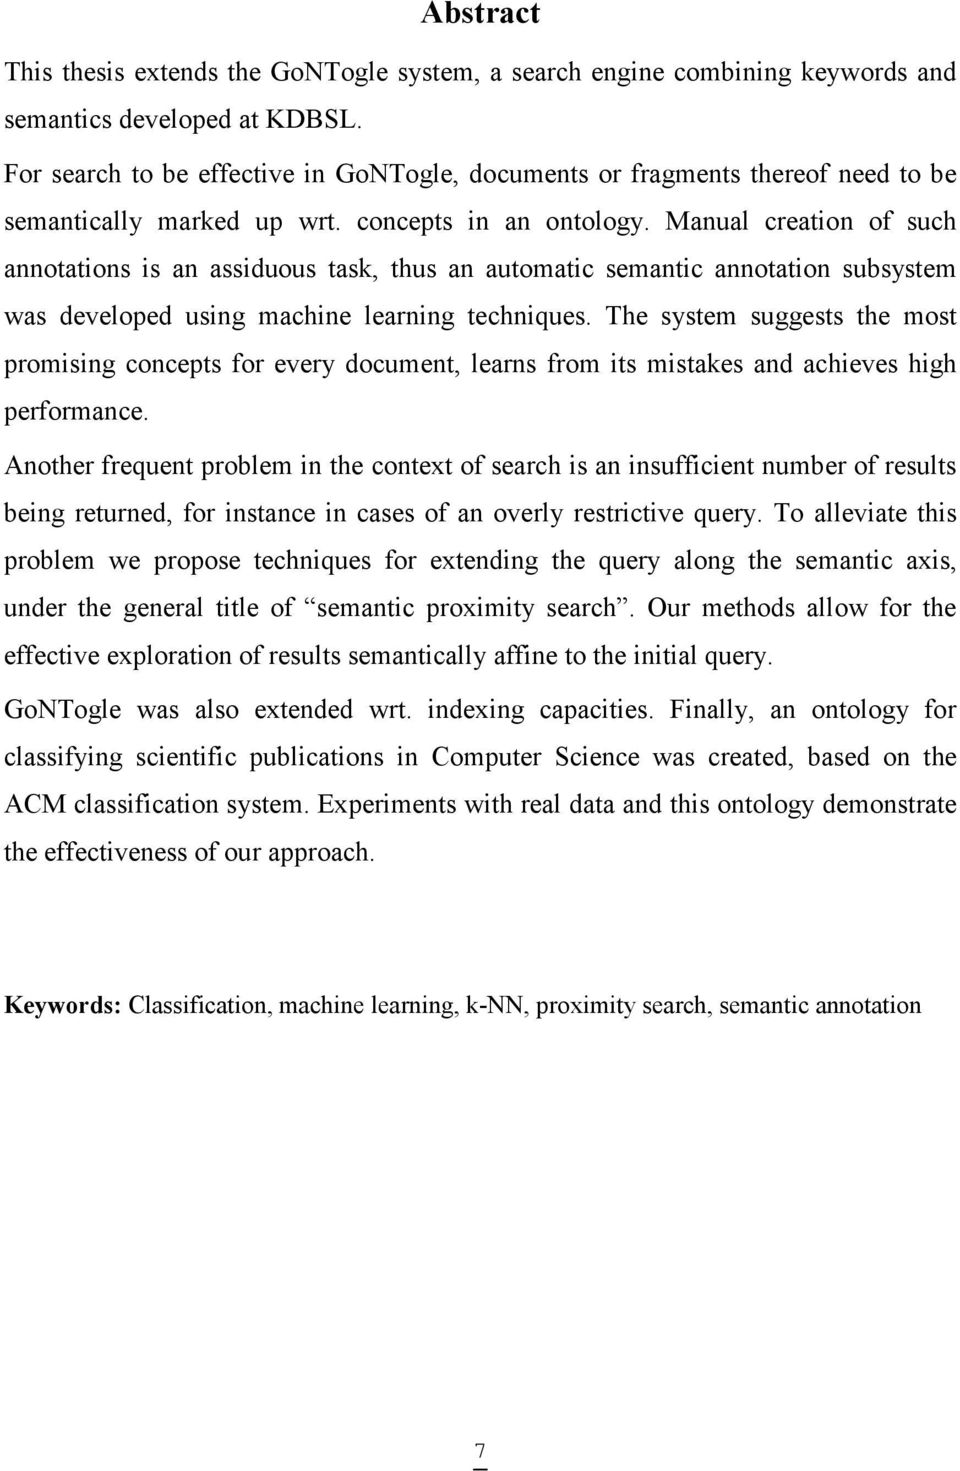 Manual creation of such annotations is an assiduous task, thus an automatic semantic annotation subsystem was developed using machine learning techniques.